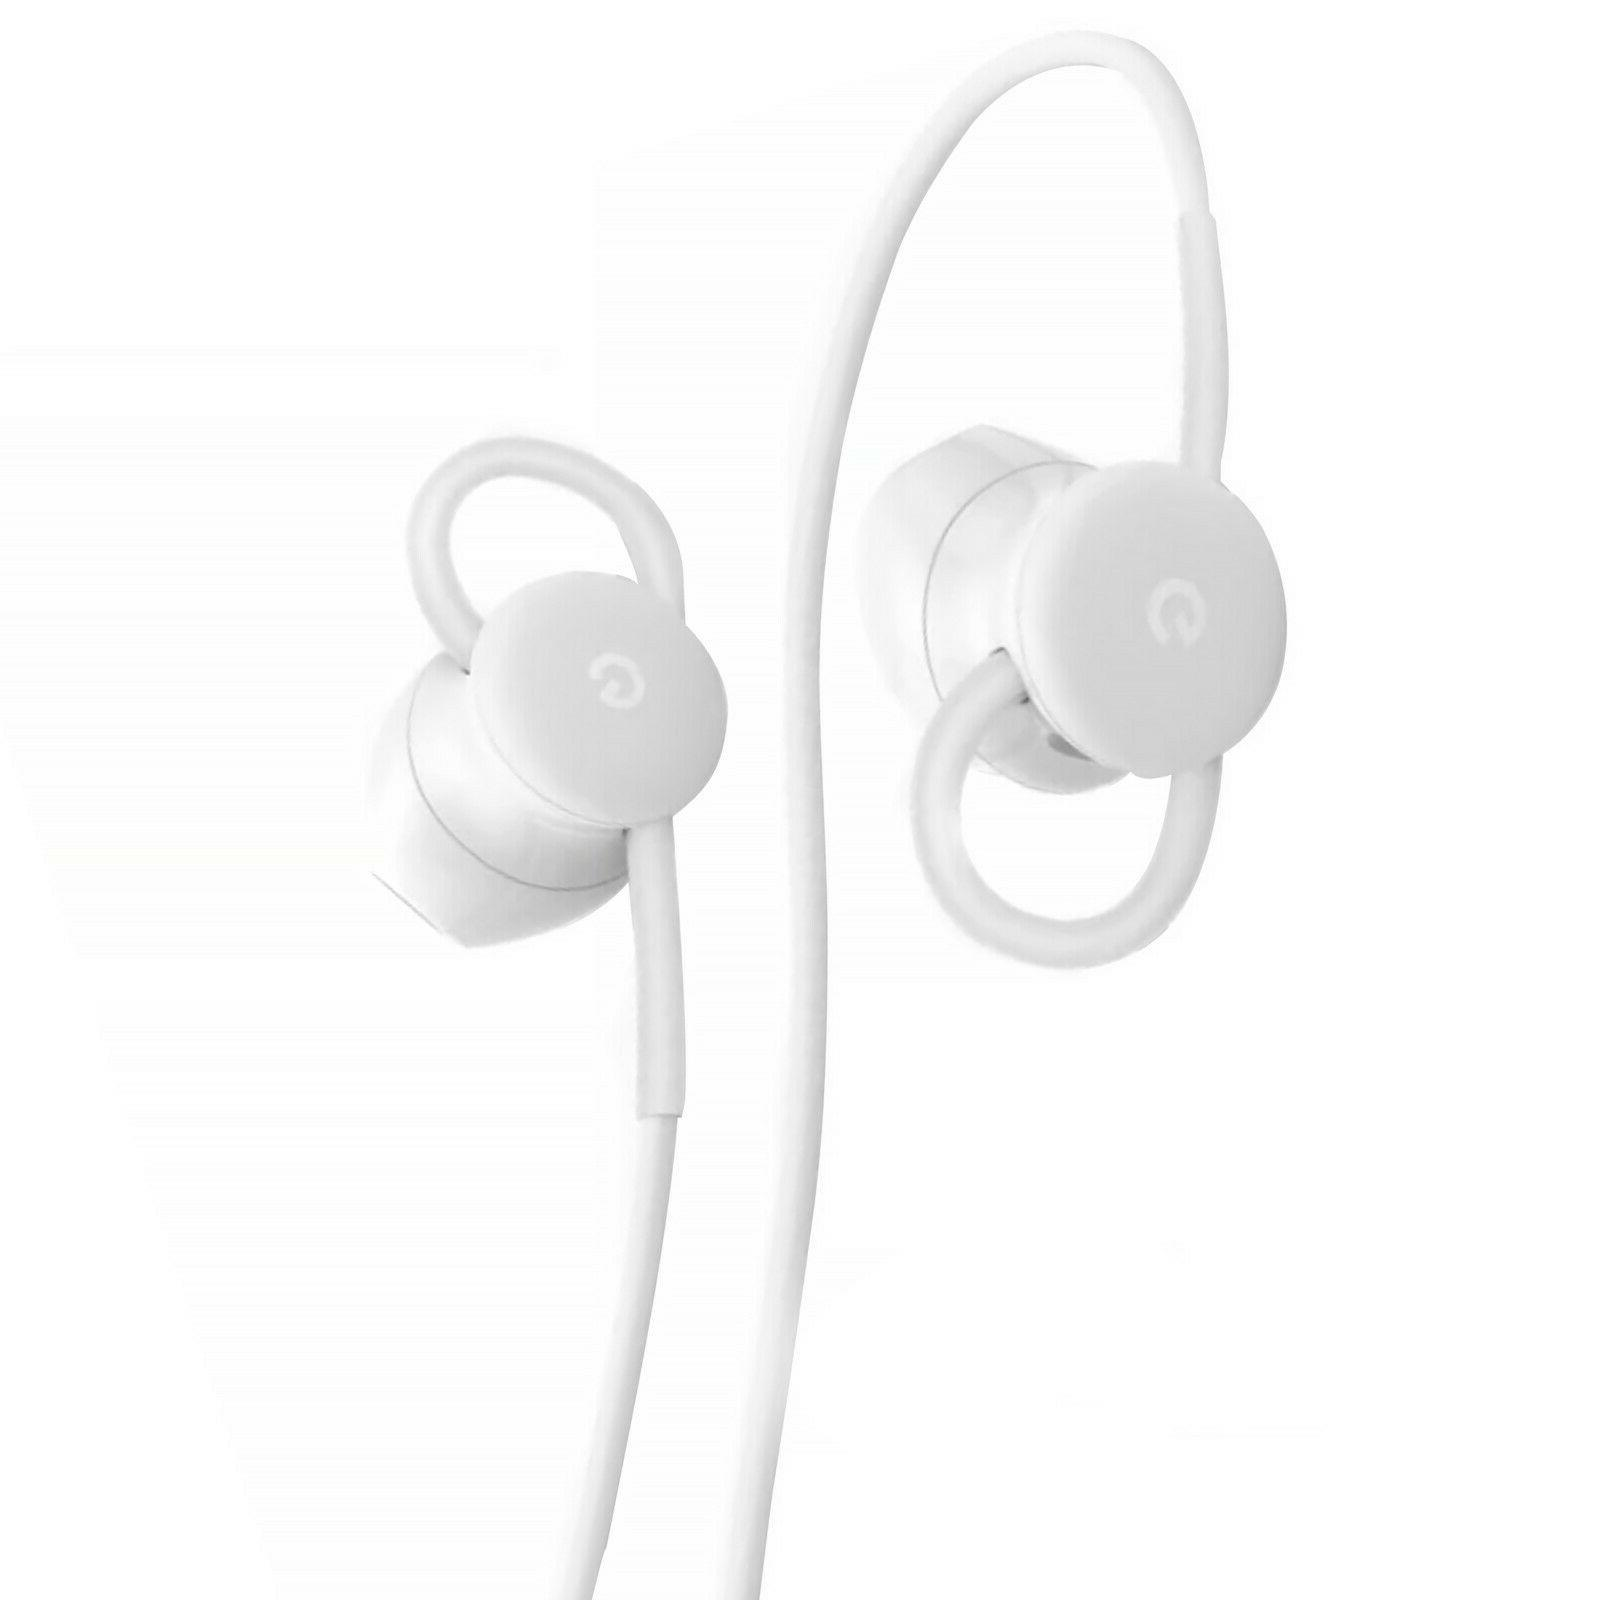 Google Earbuds, to AUX 3.5mm - Kit